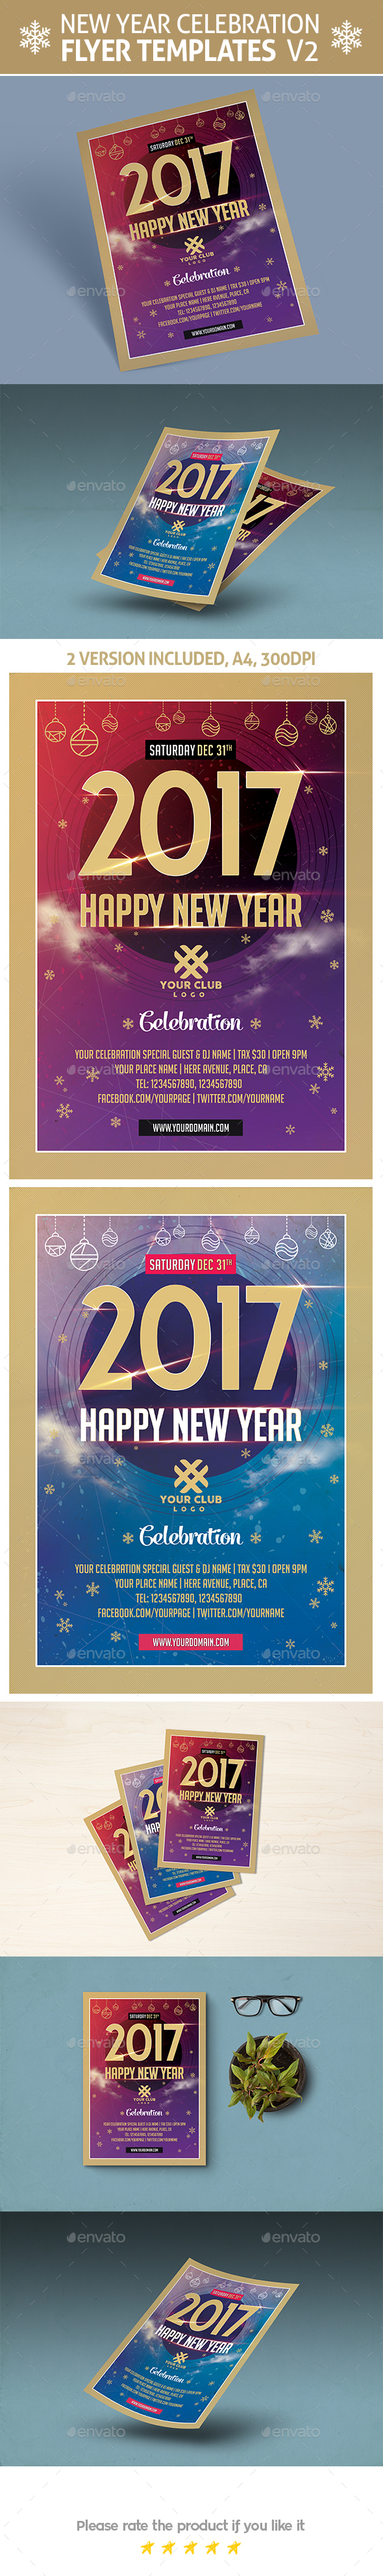 New Year Celebration Flyer Templates - Events Flyers